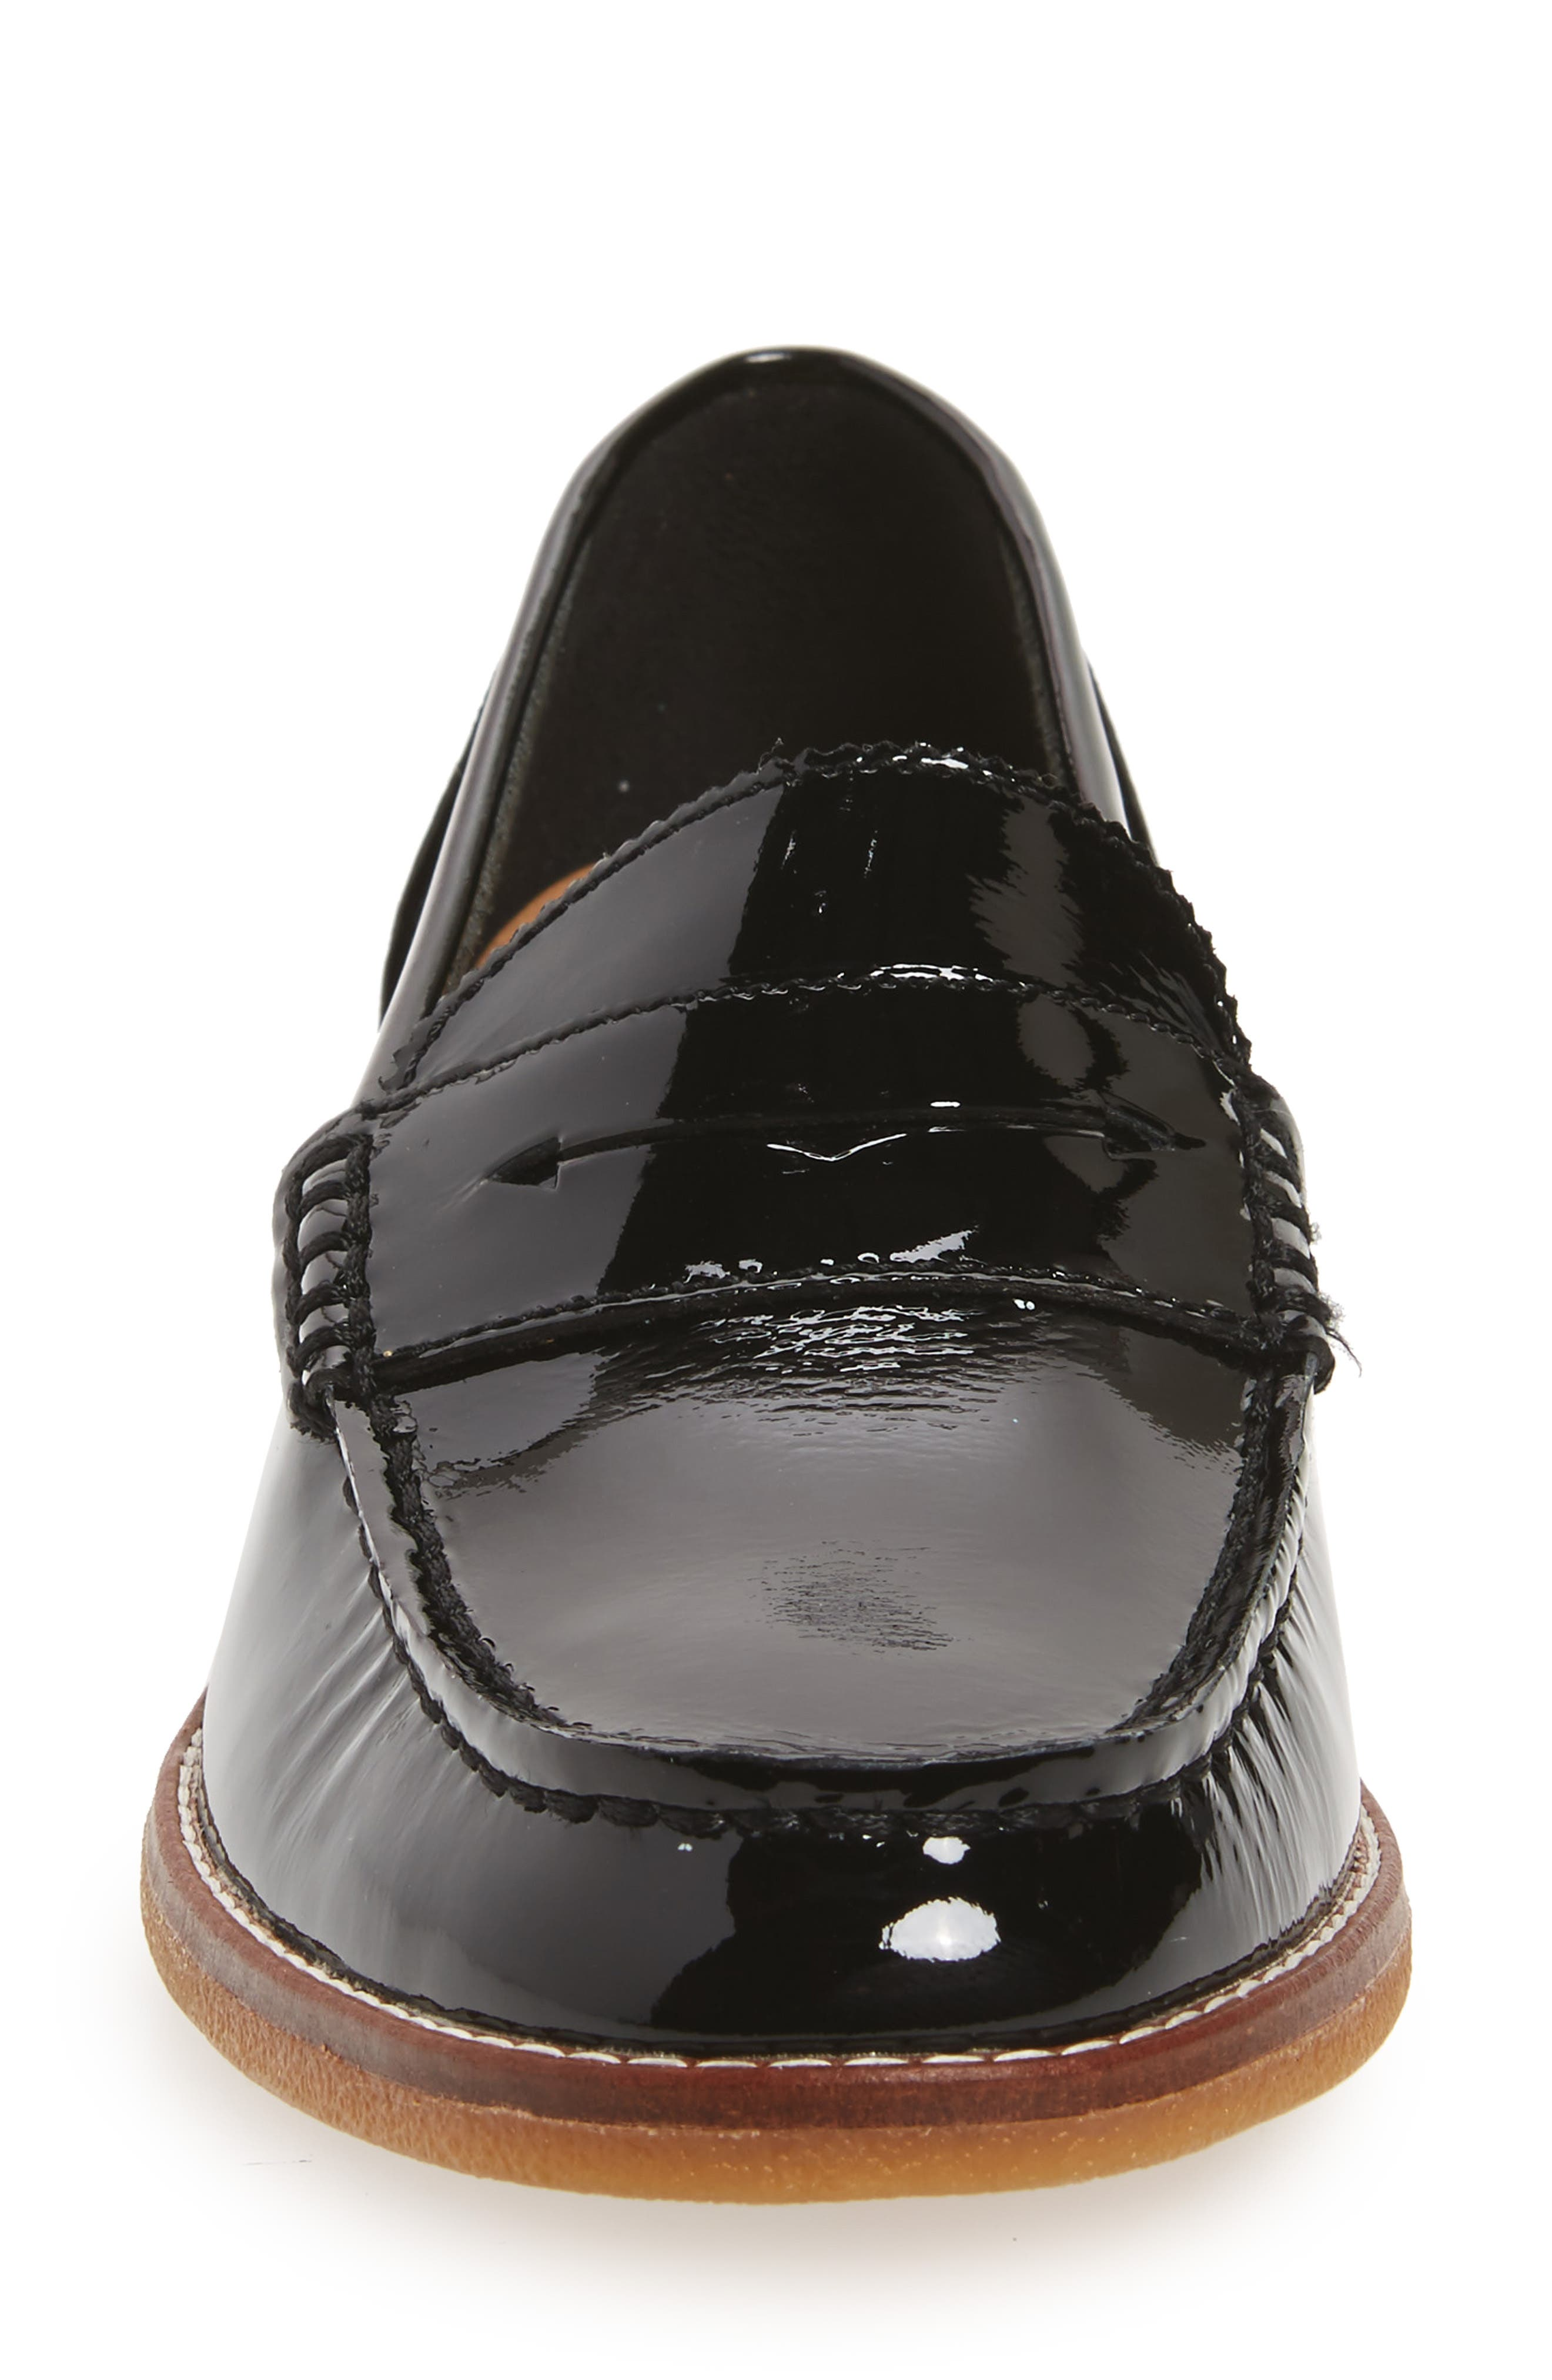 Seaport Penny Loafer,                             Alternate thumbnail 4, color,                             BLACK PATENT LEATHER